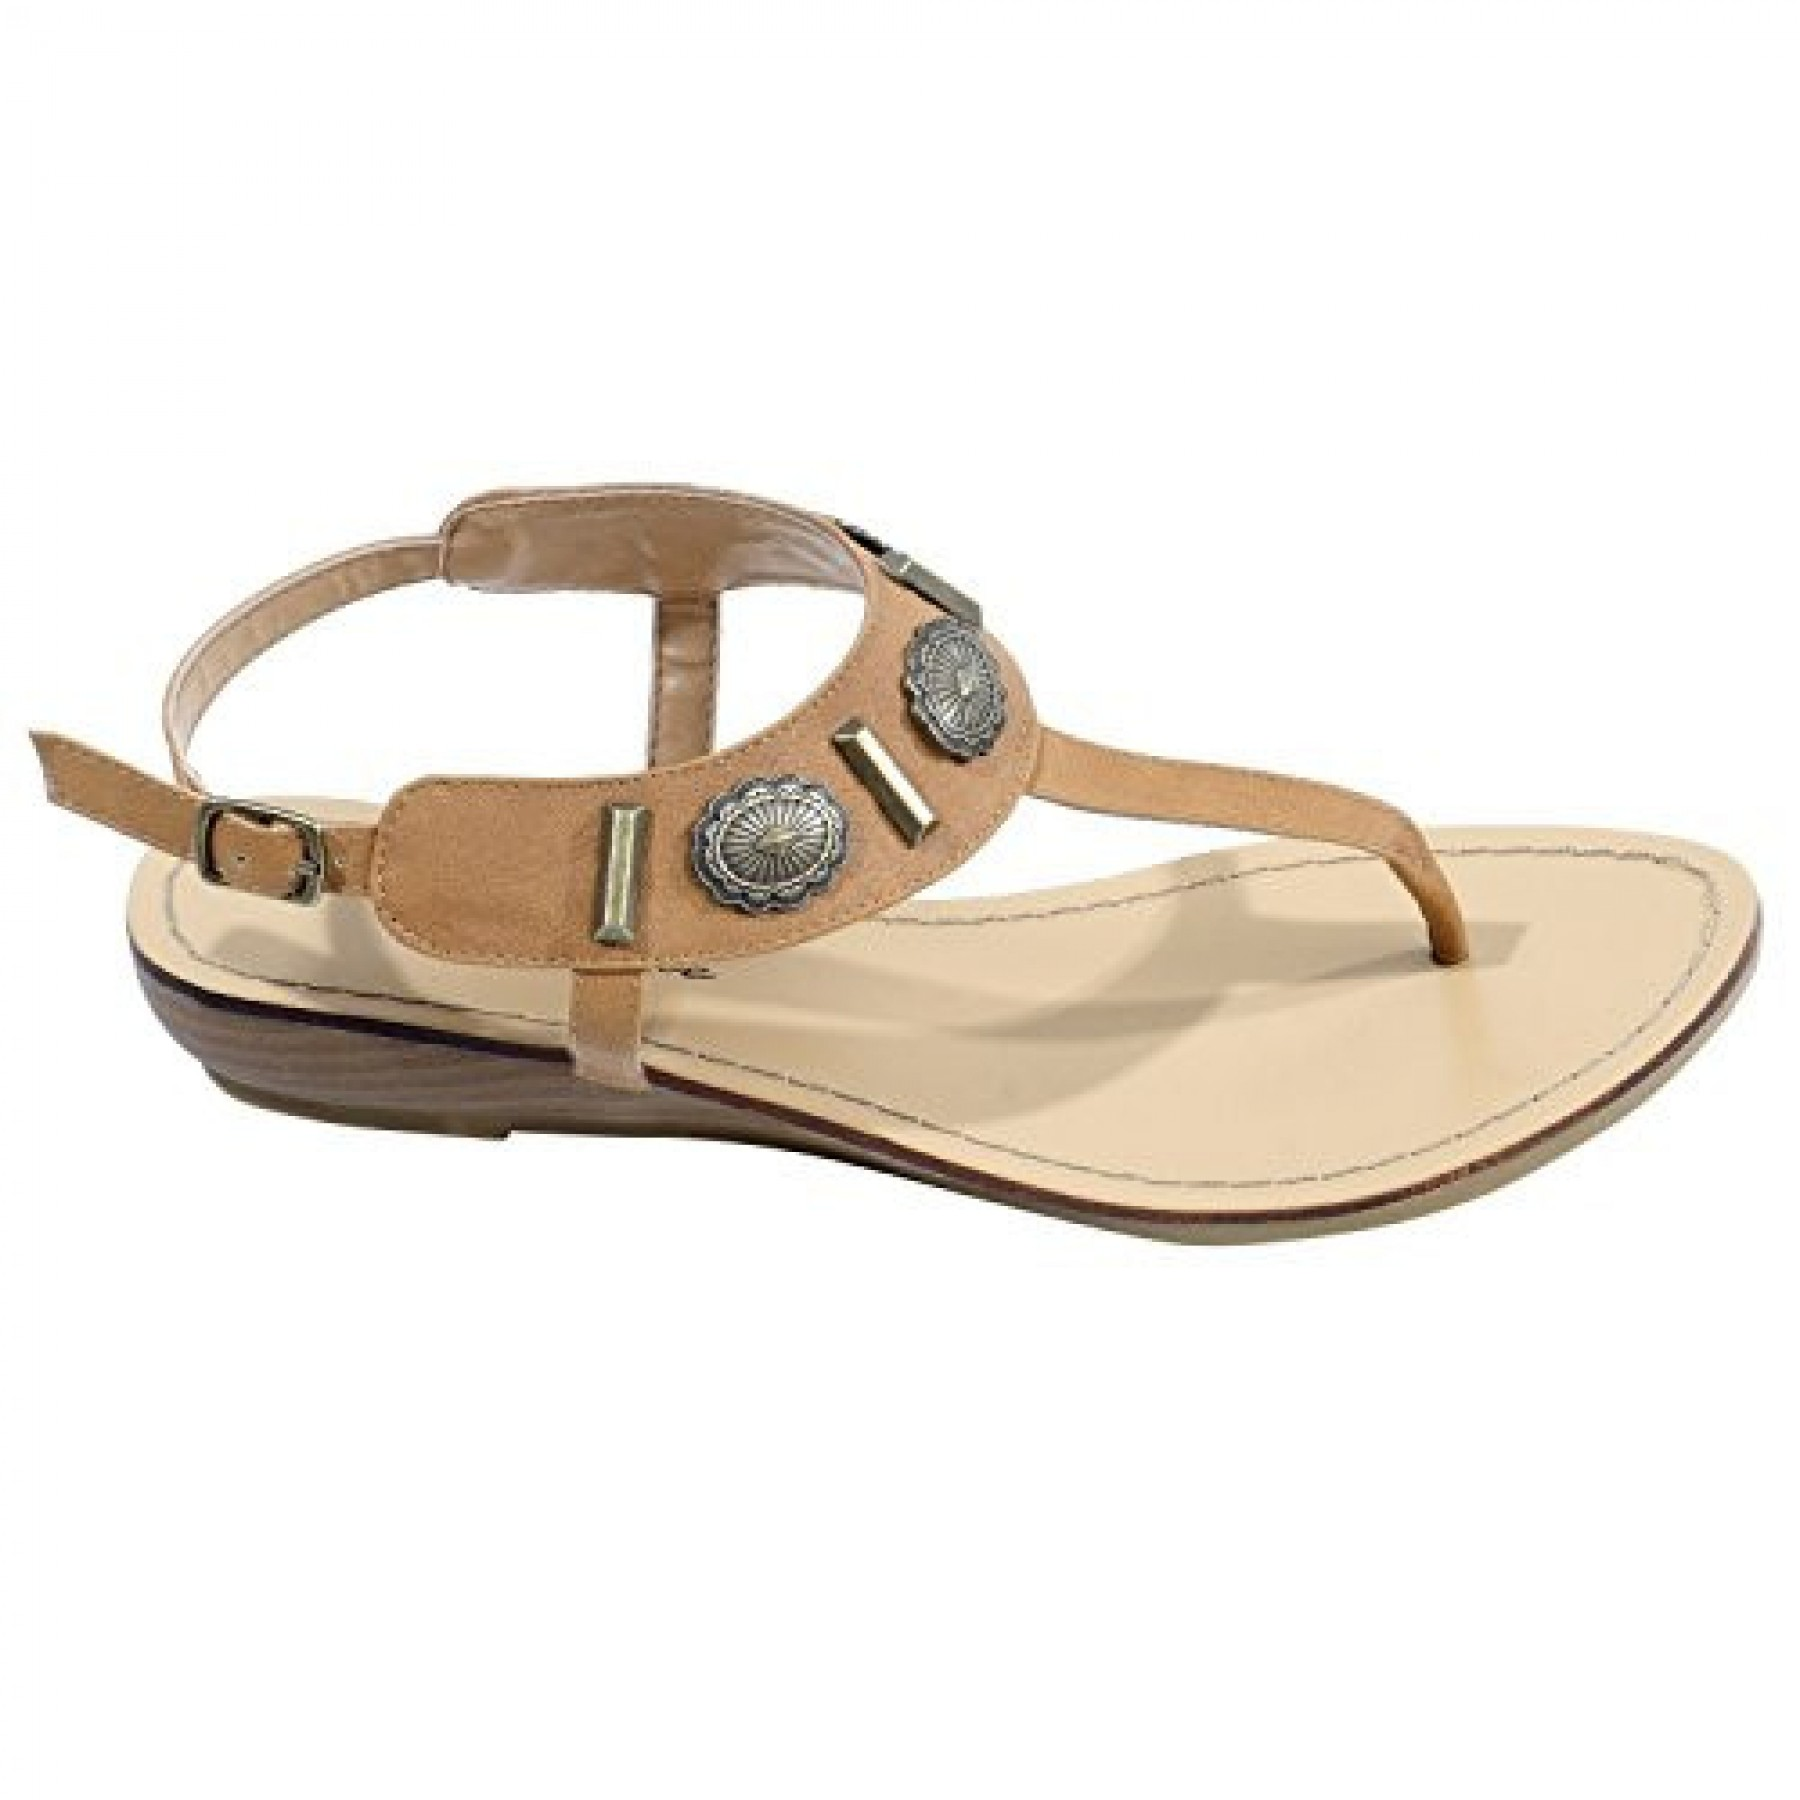 Women's Cognac Veranda Manmade Flat Sandal with Flirty Metallic Accents